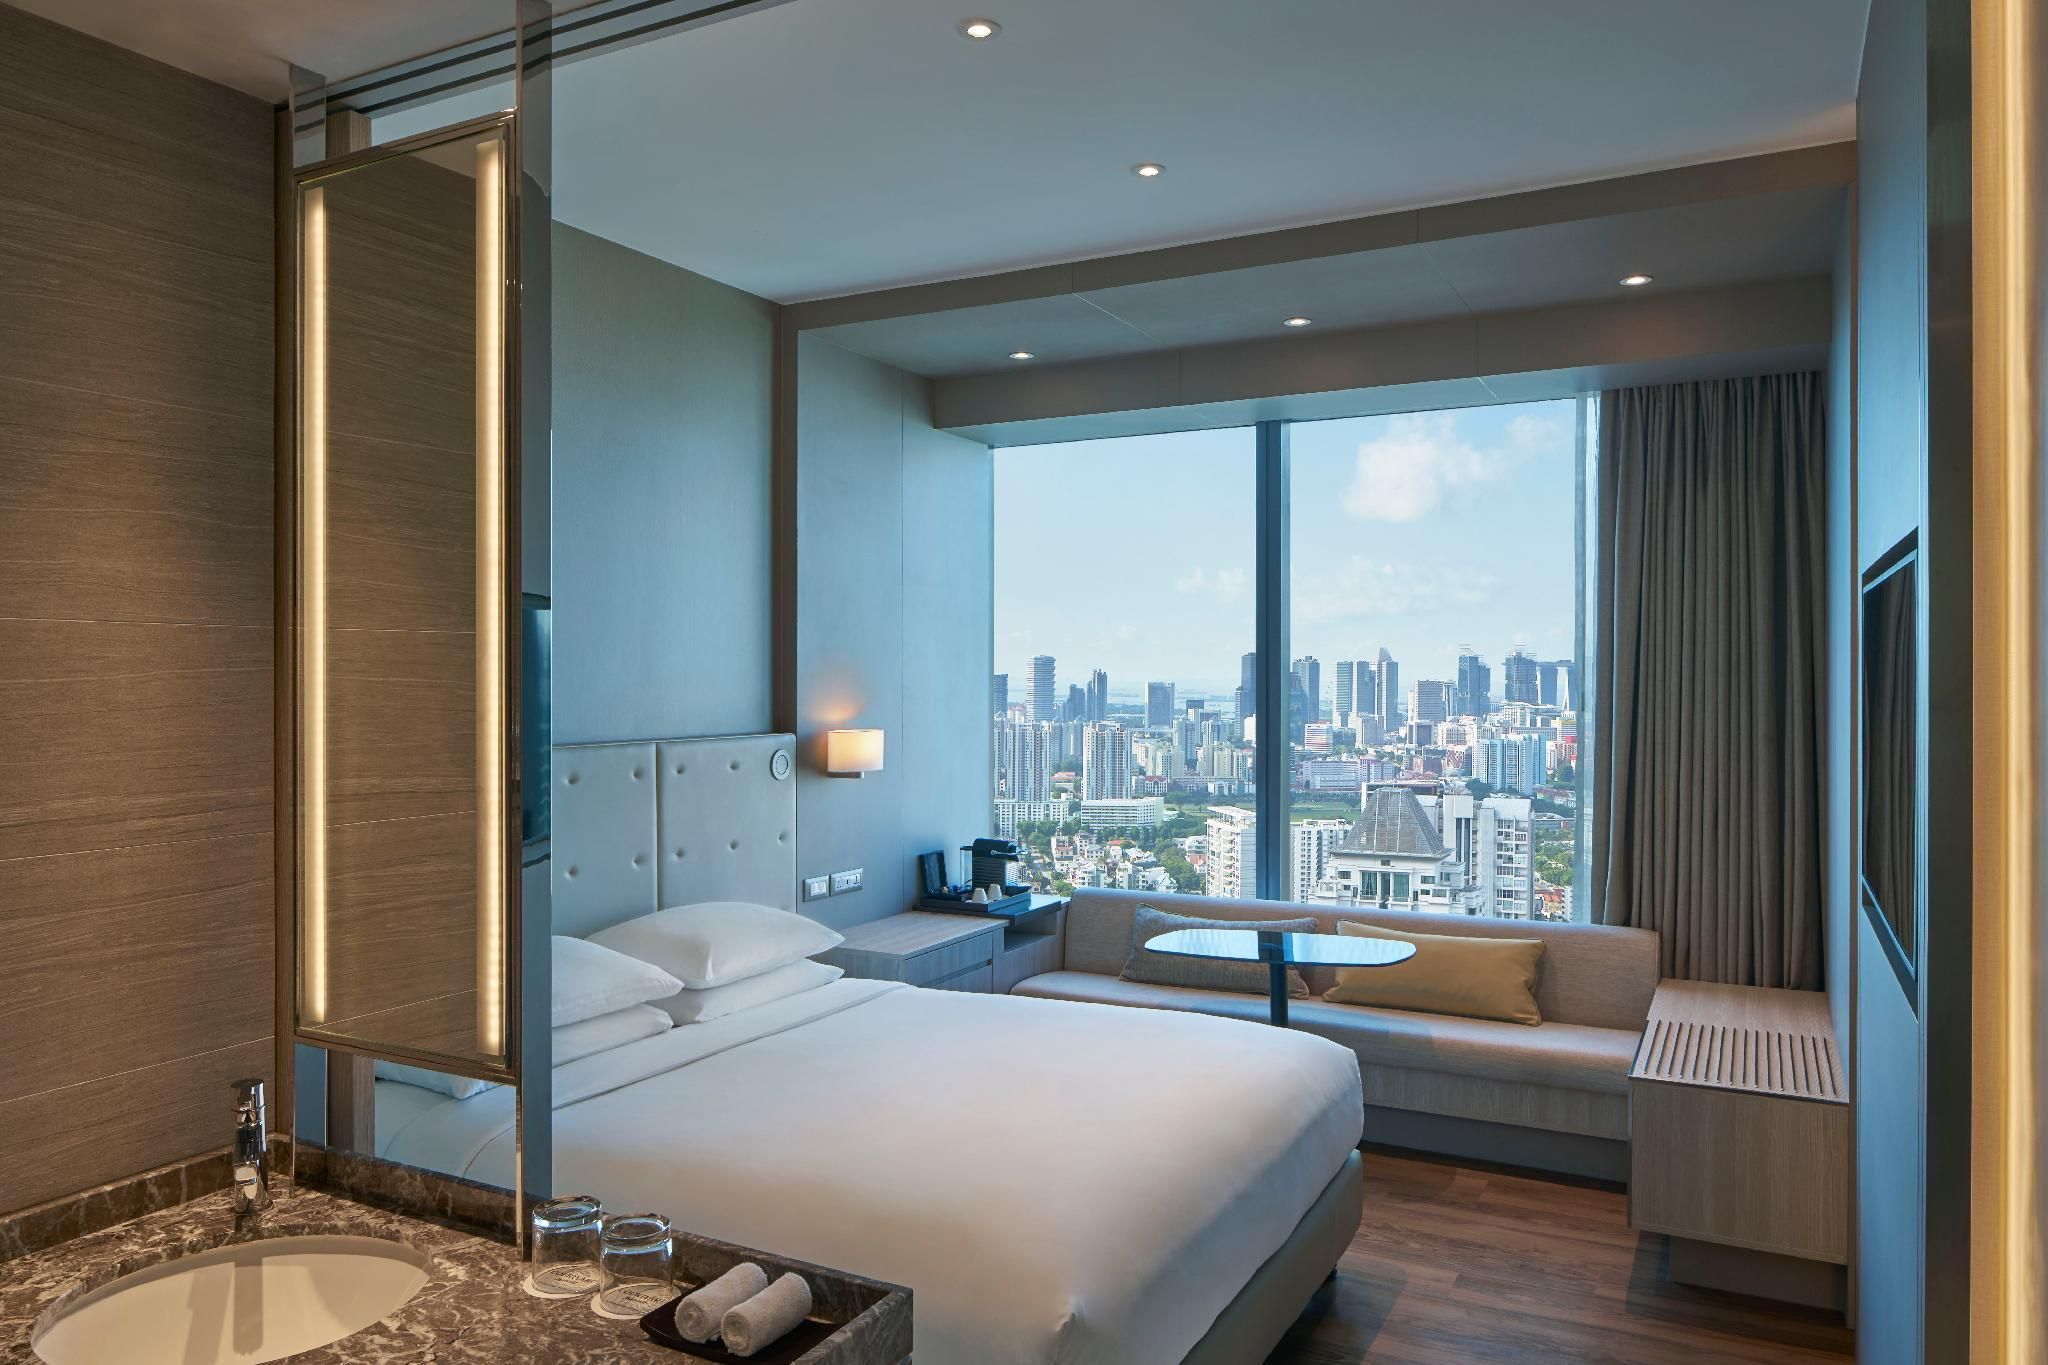 Premier Room, Guest room, 1 King, Skyline view, High floor